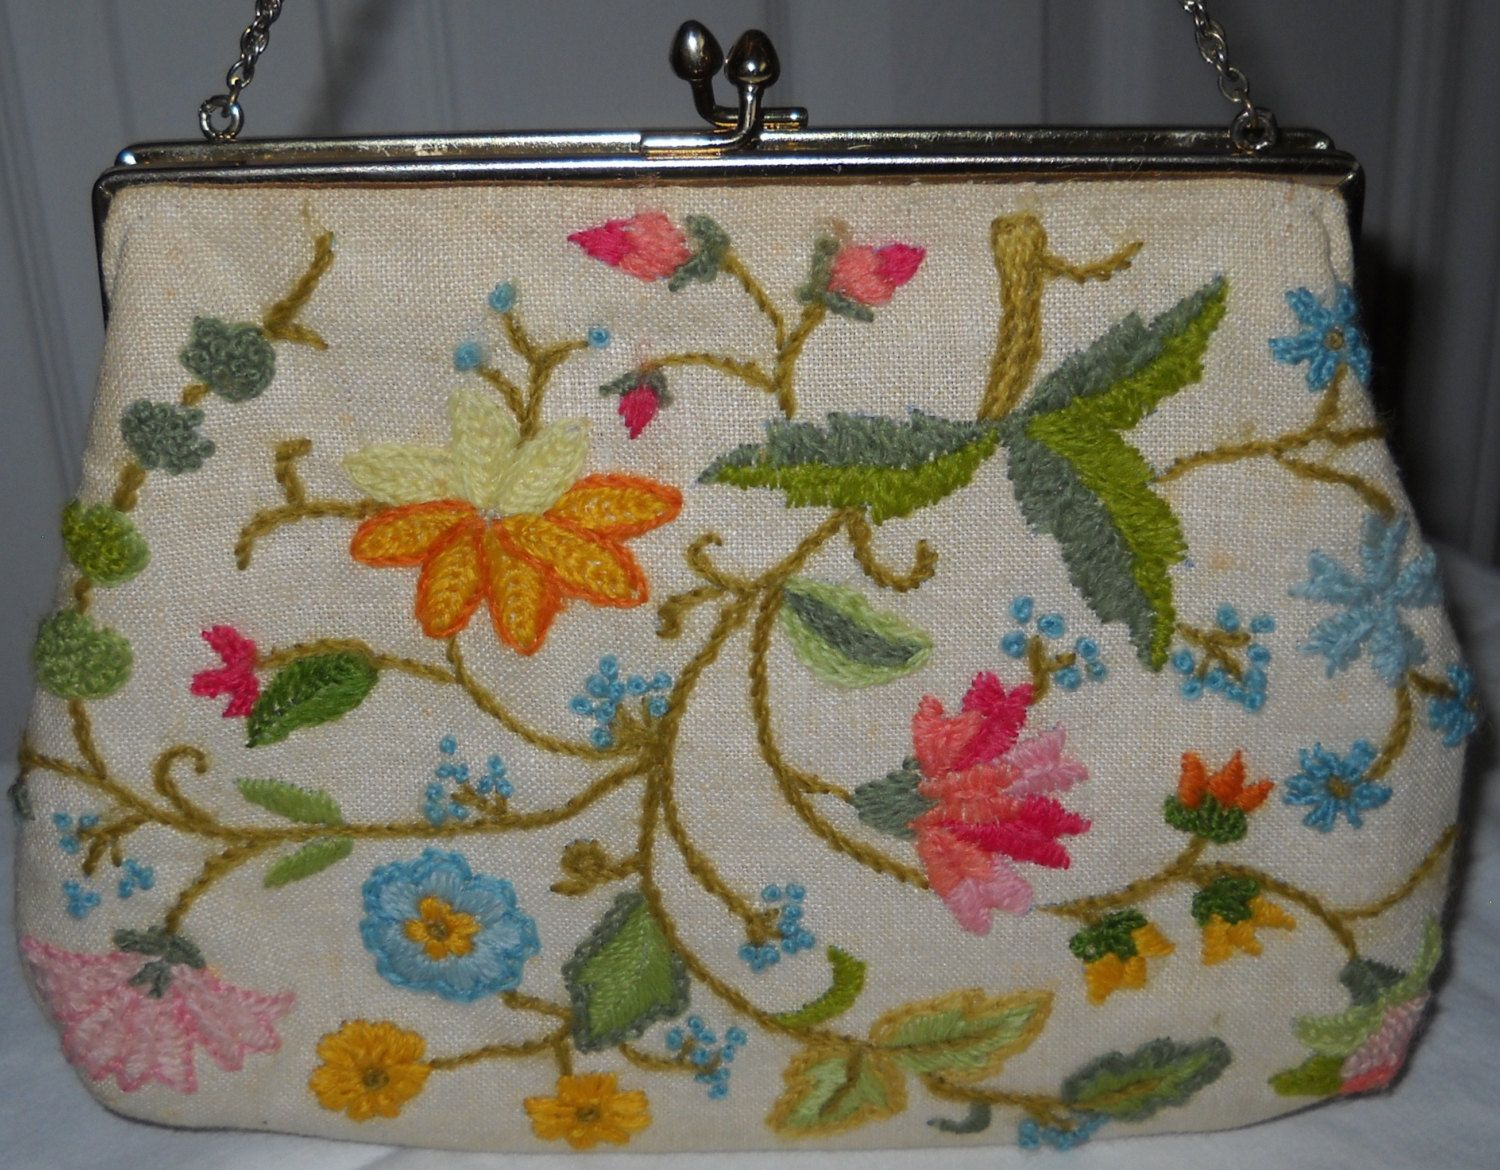 Vintage Purse - Flowers by Luv2Junk on Etsy